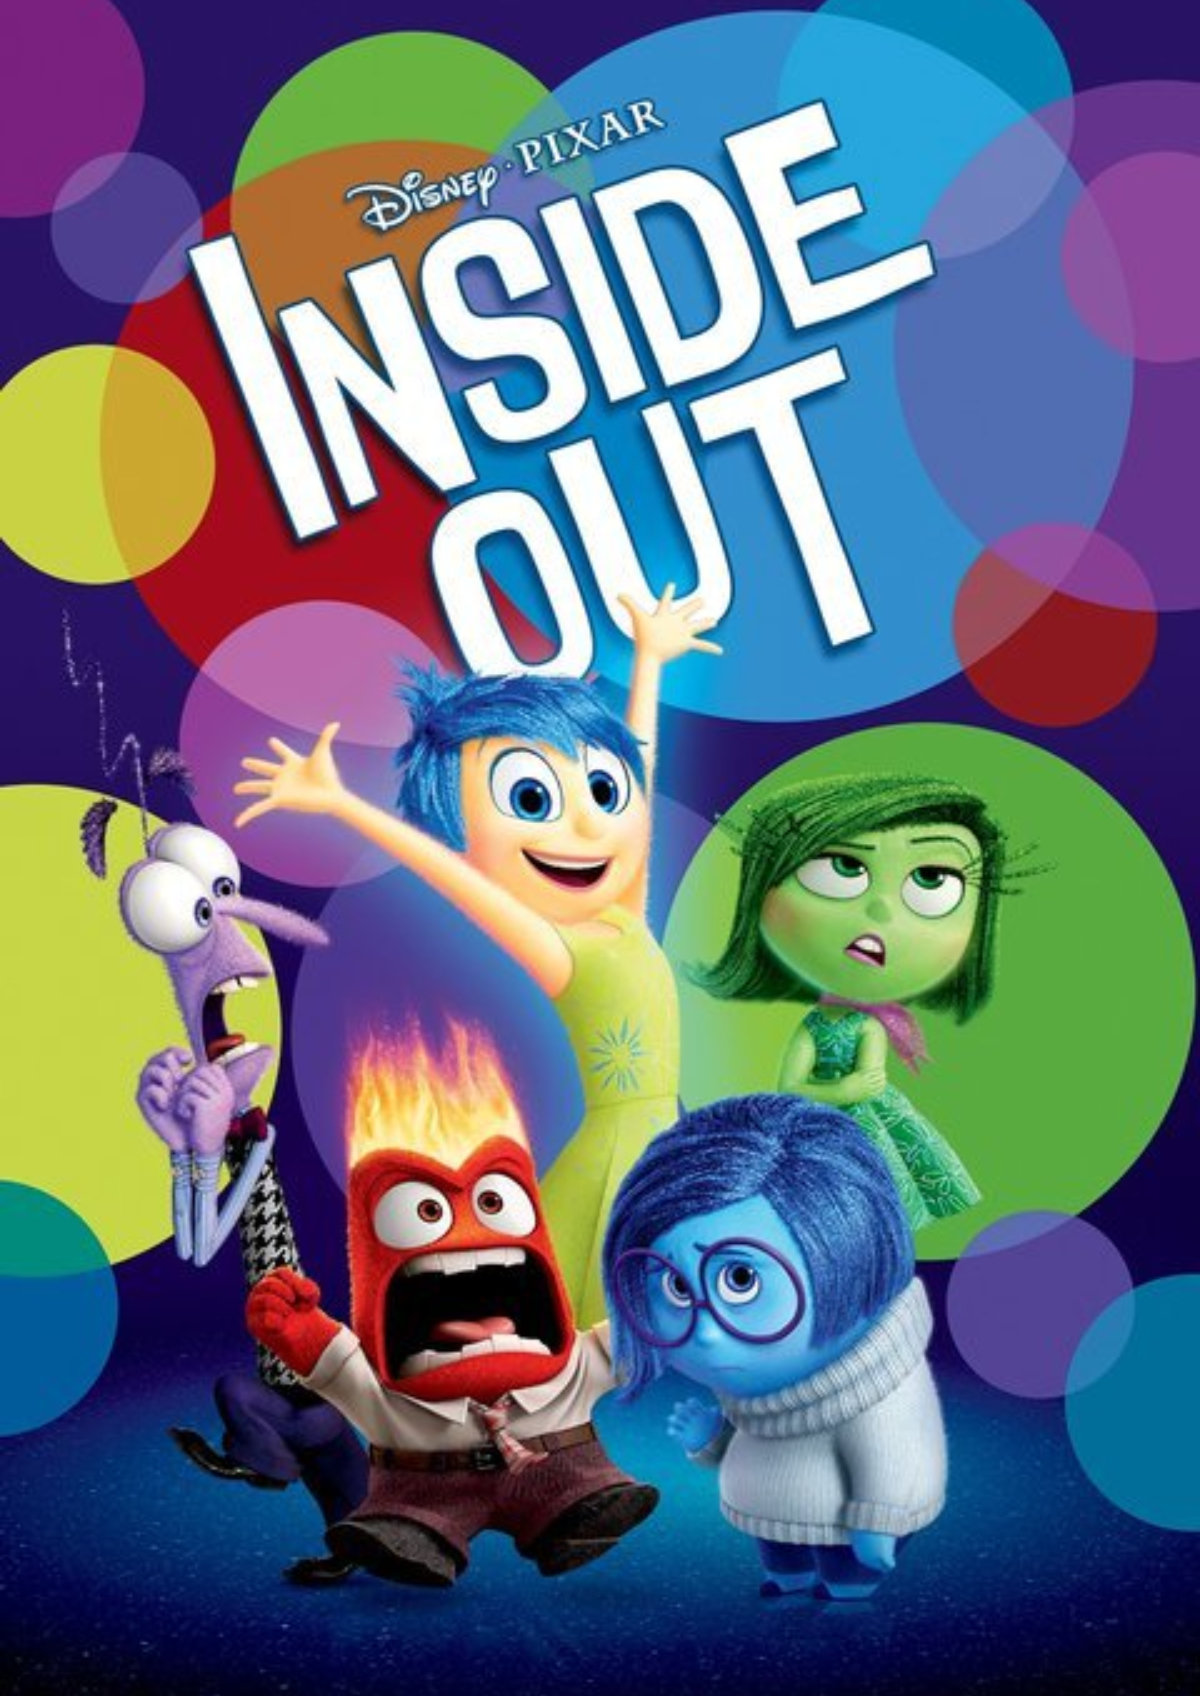 'Inside Out' movie poster